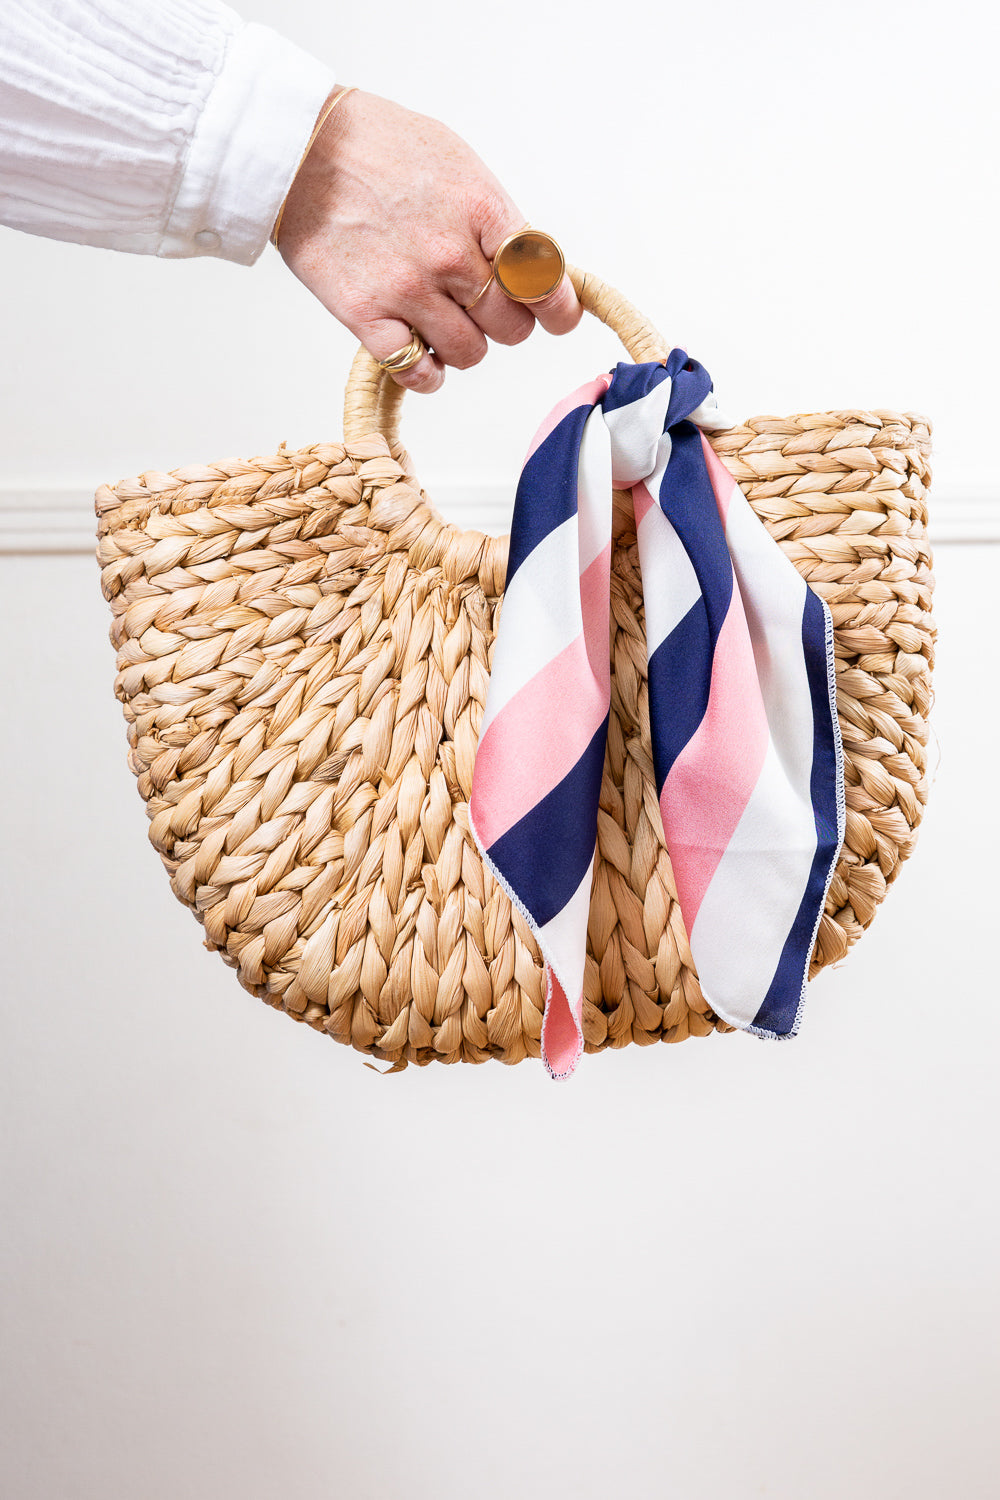 natural raffia straw rattan tote hand bag with pink and blue striped scarf held in hand Janna Conner